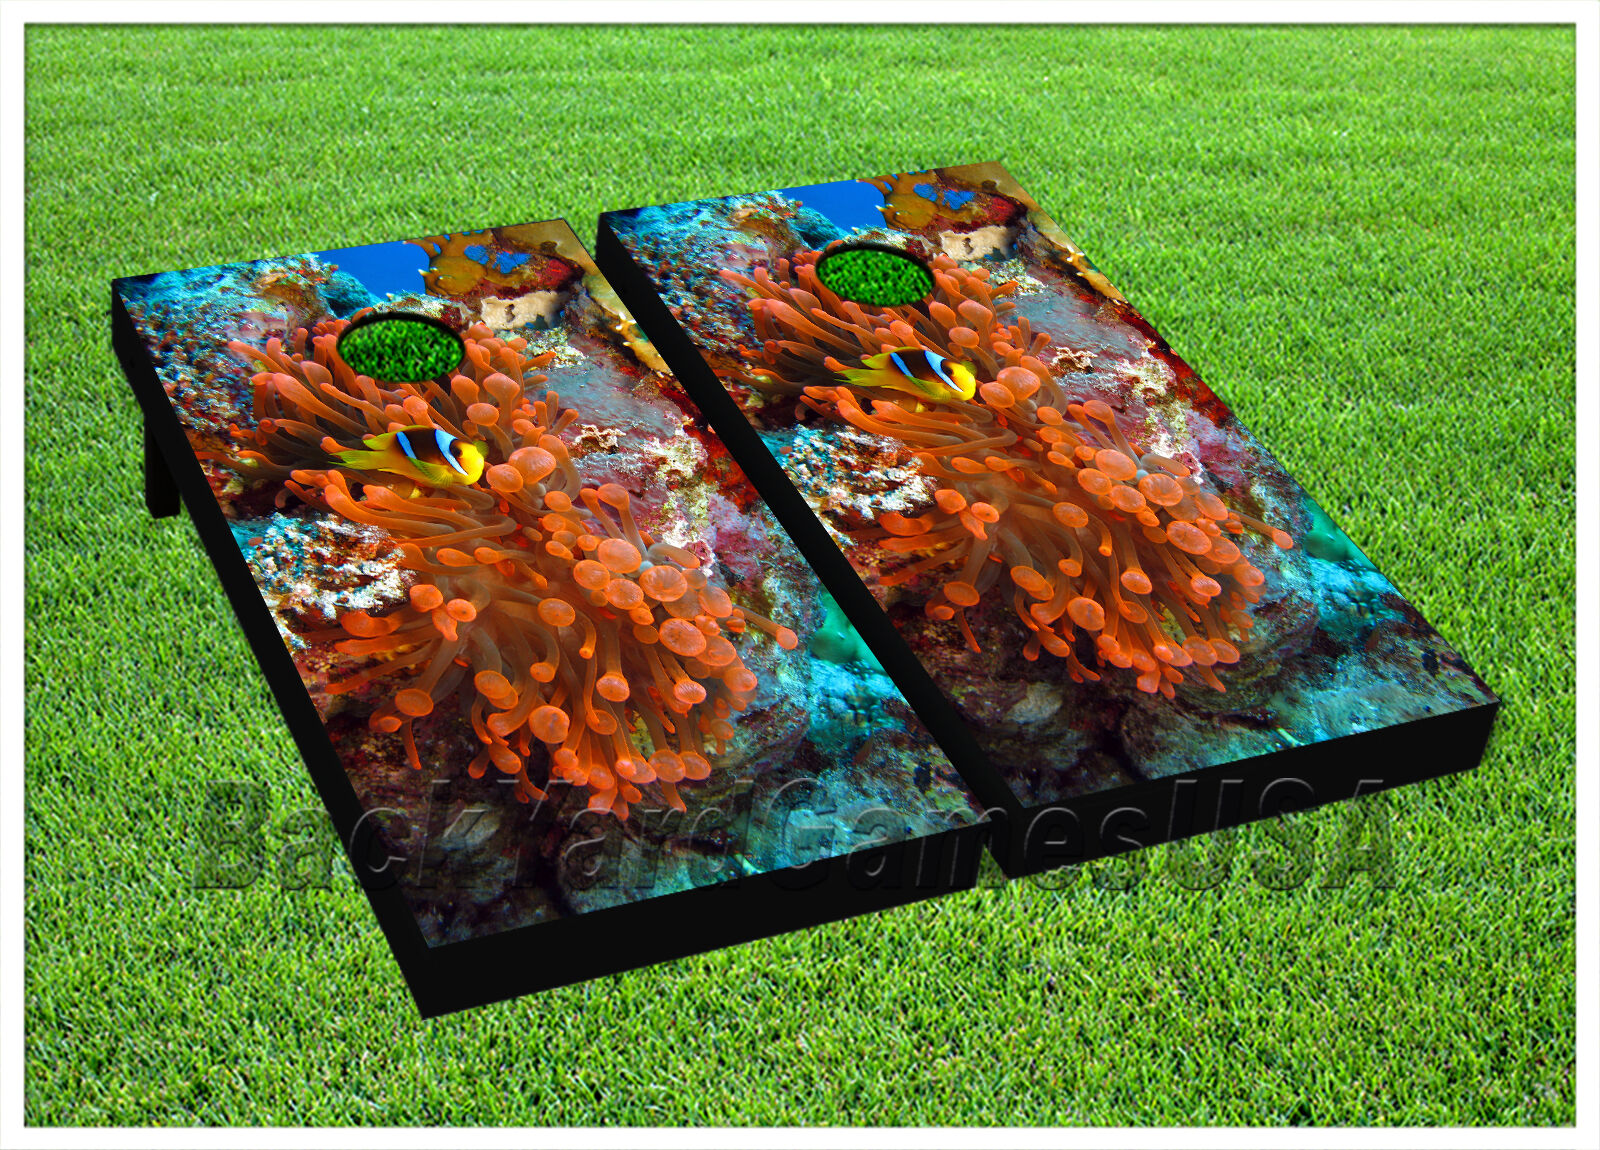 CORNHOLE BEANBAG TOSS GAME w Bags Game Boards Marine Life Set 1080